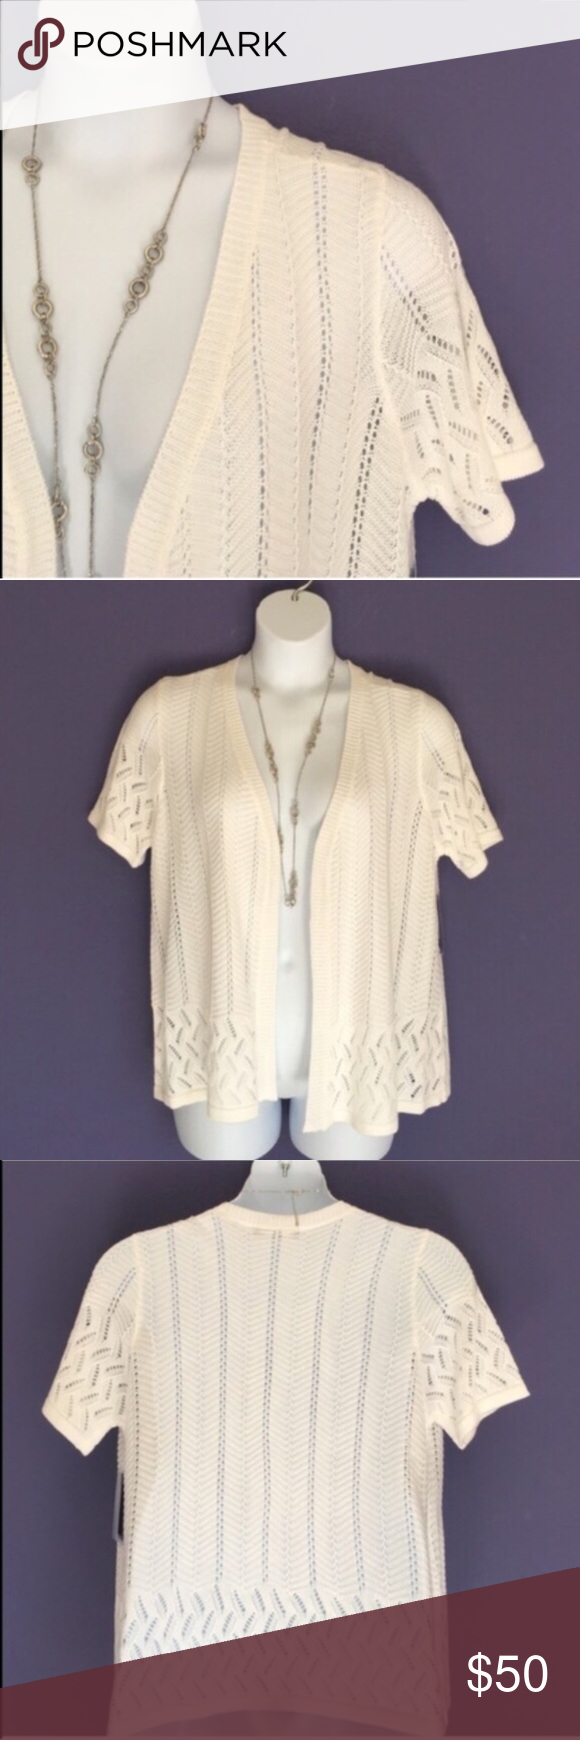 Cyrus Short Sleeve White Cardigan NWT- This sweater cardigan is ...